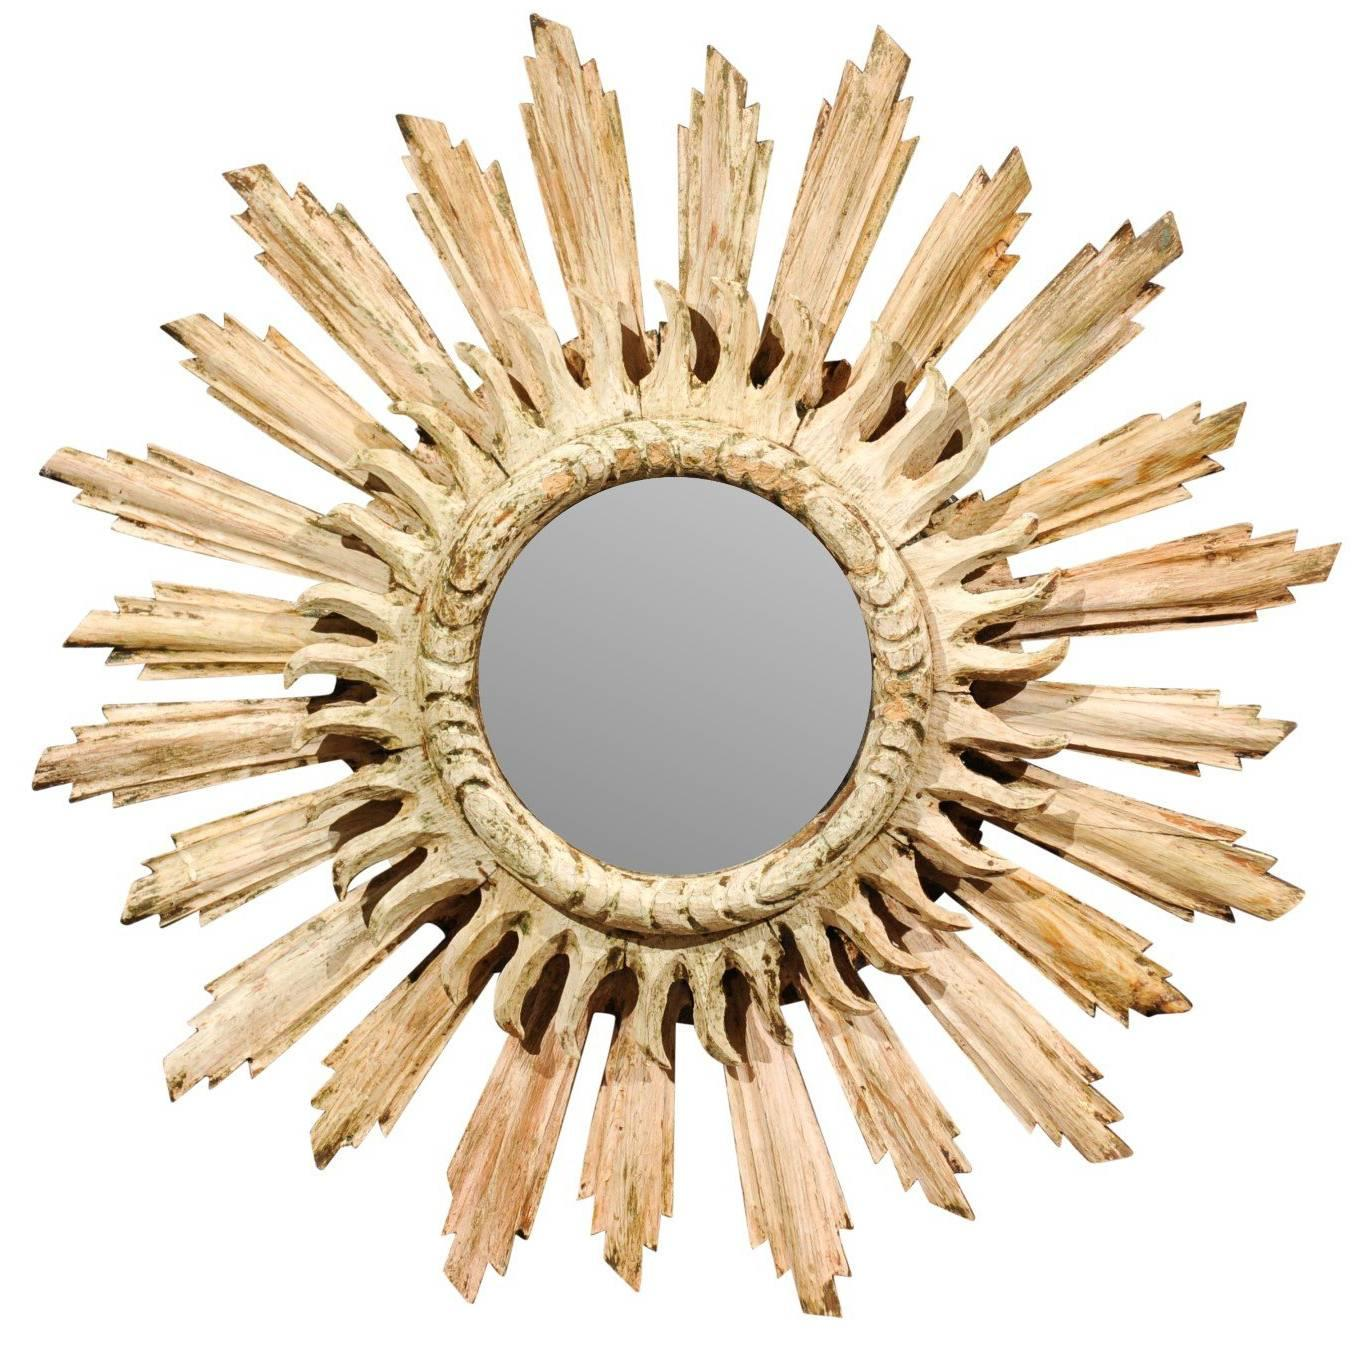 Vintage Italian Sunburst Mirror with Wavy Rays from the Mid-20th ...